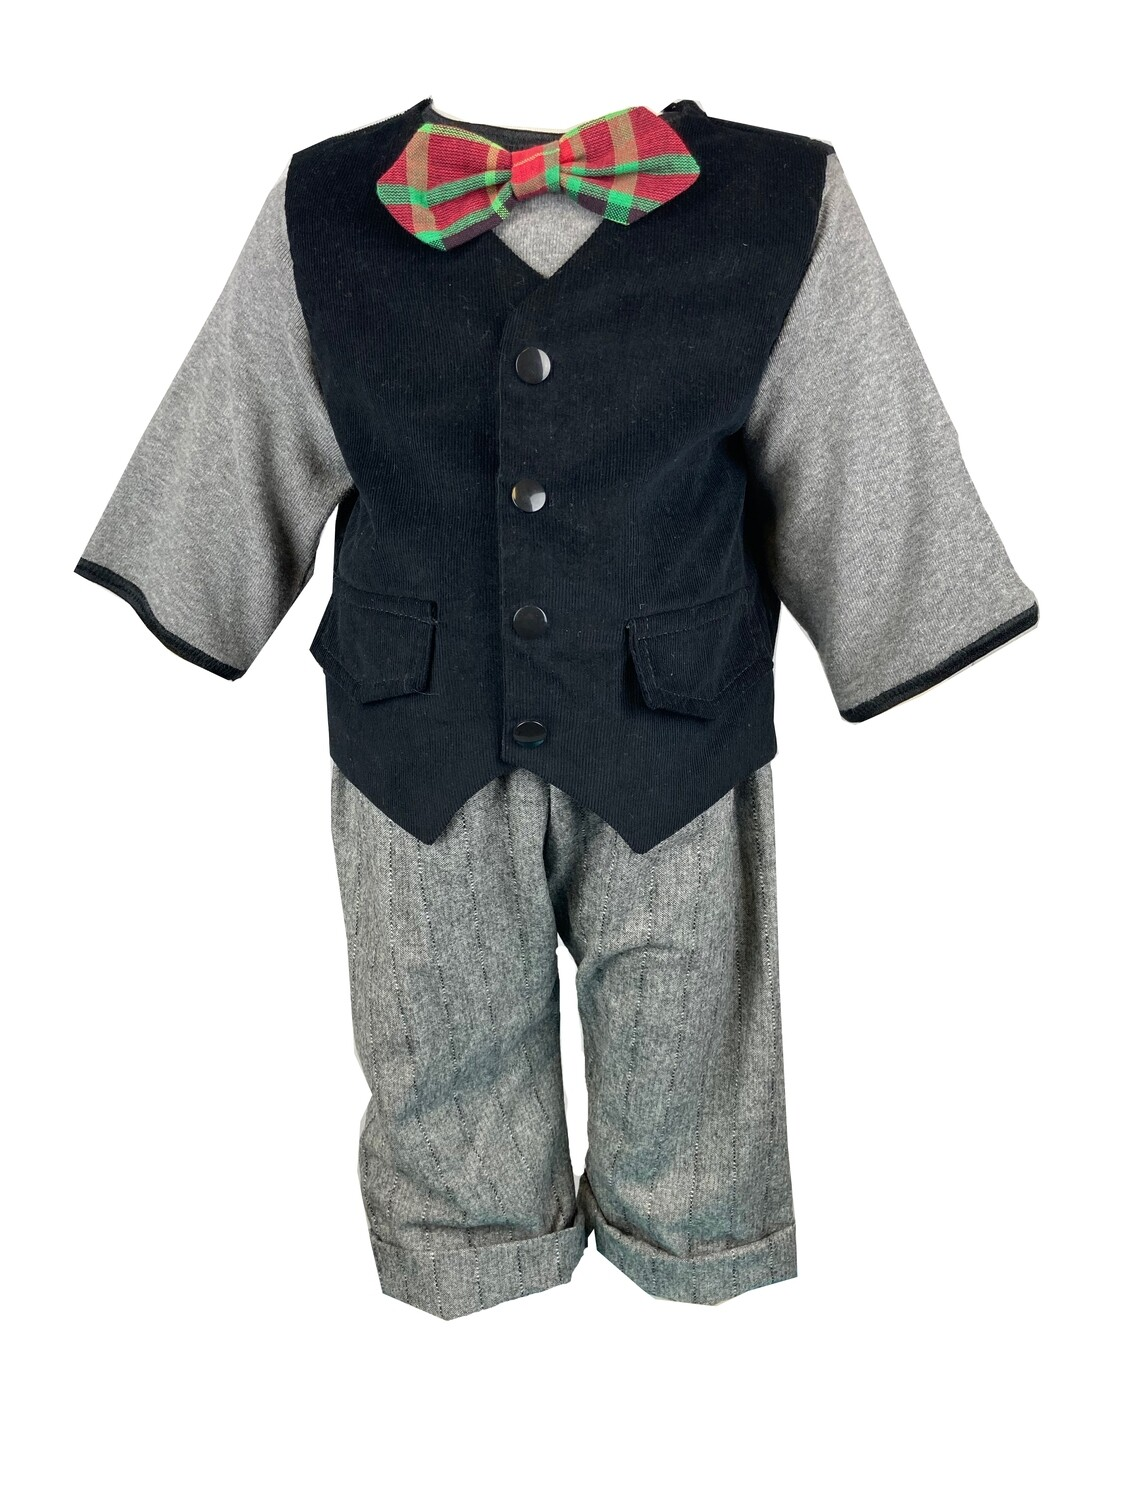 Boy Grey and Black Holiday Outfit